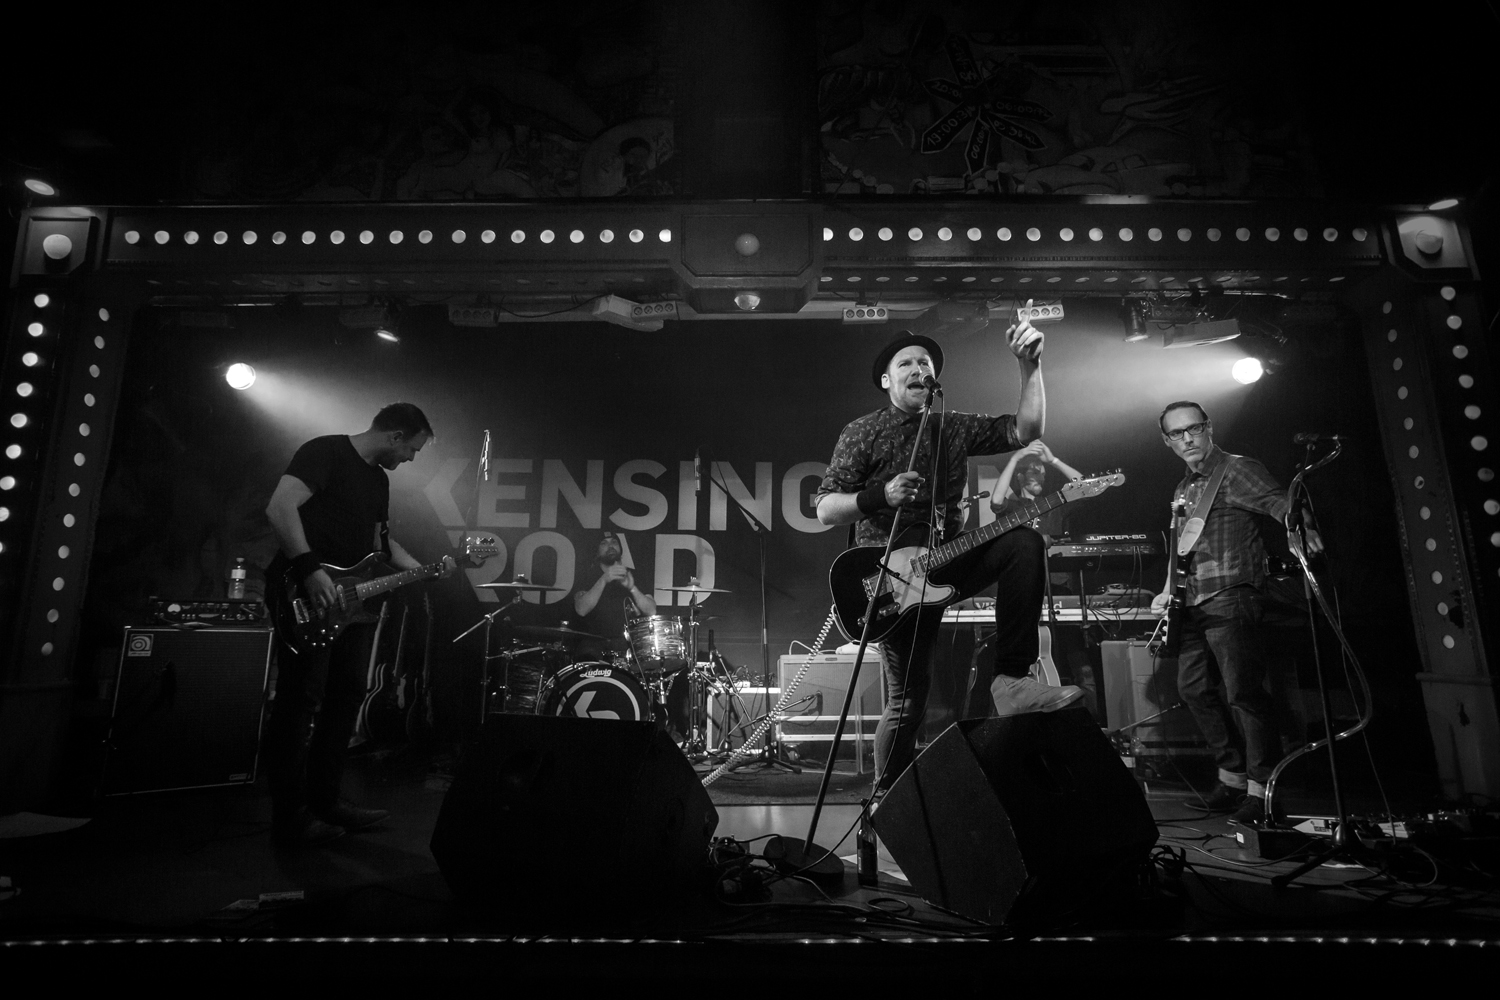 Kensington Road - Rock at Sage, Berlin